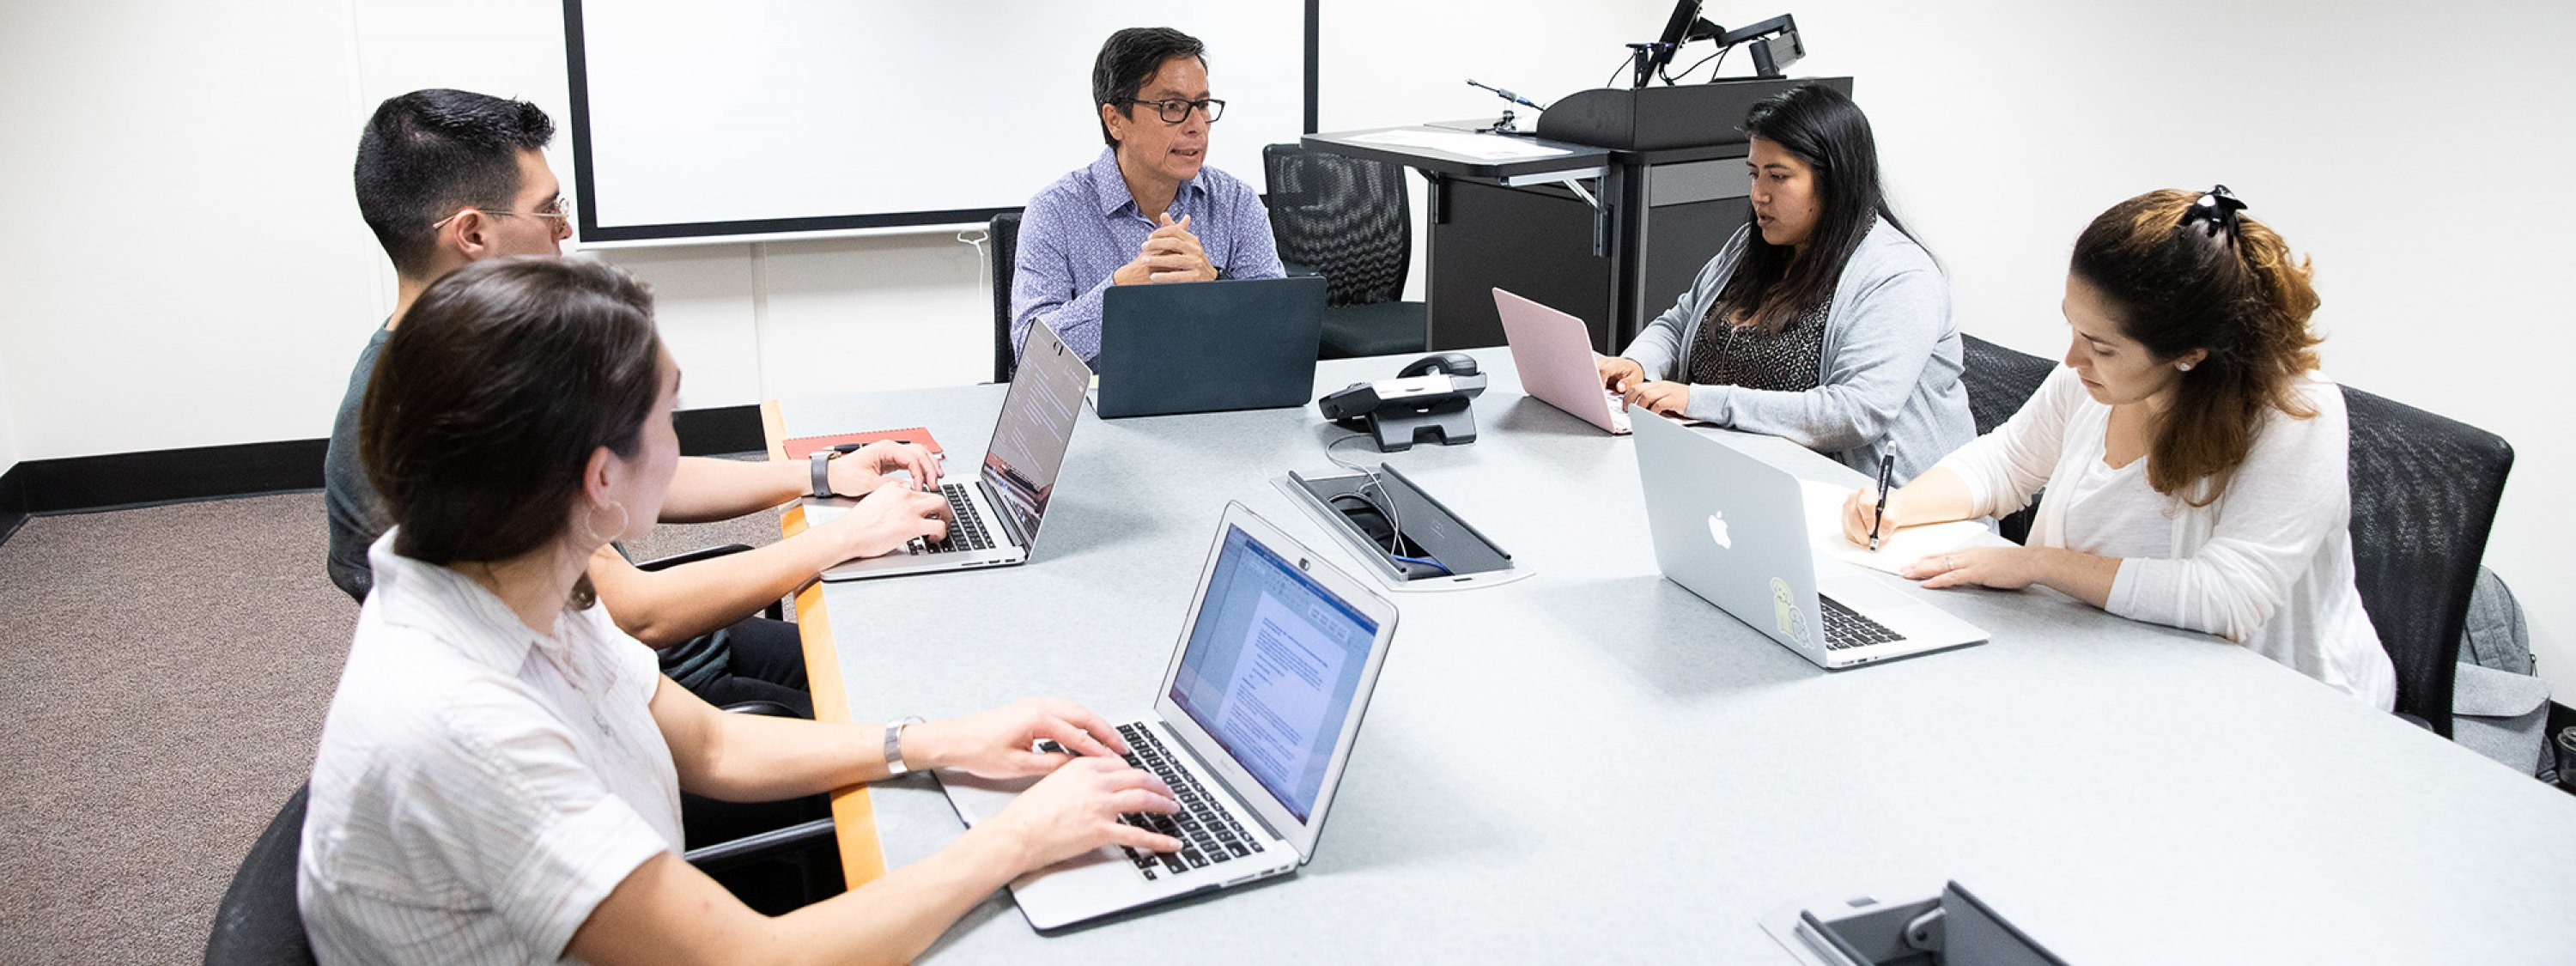 Image of students using laptops in a study room